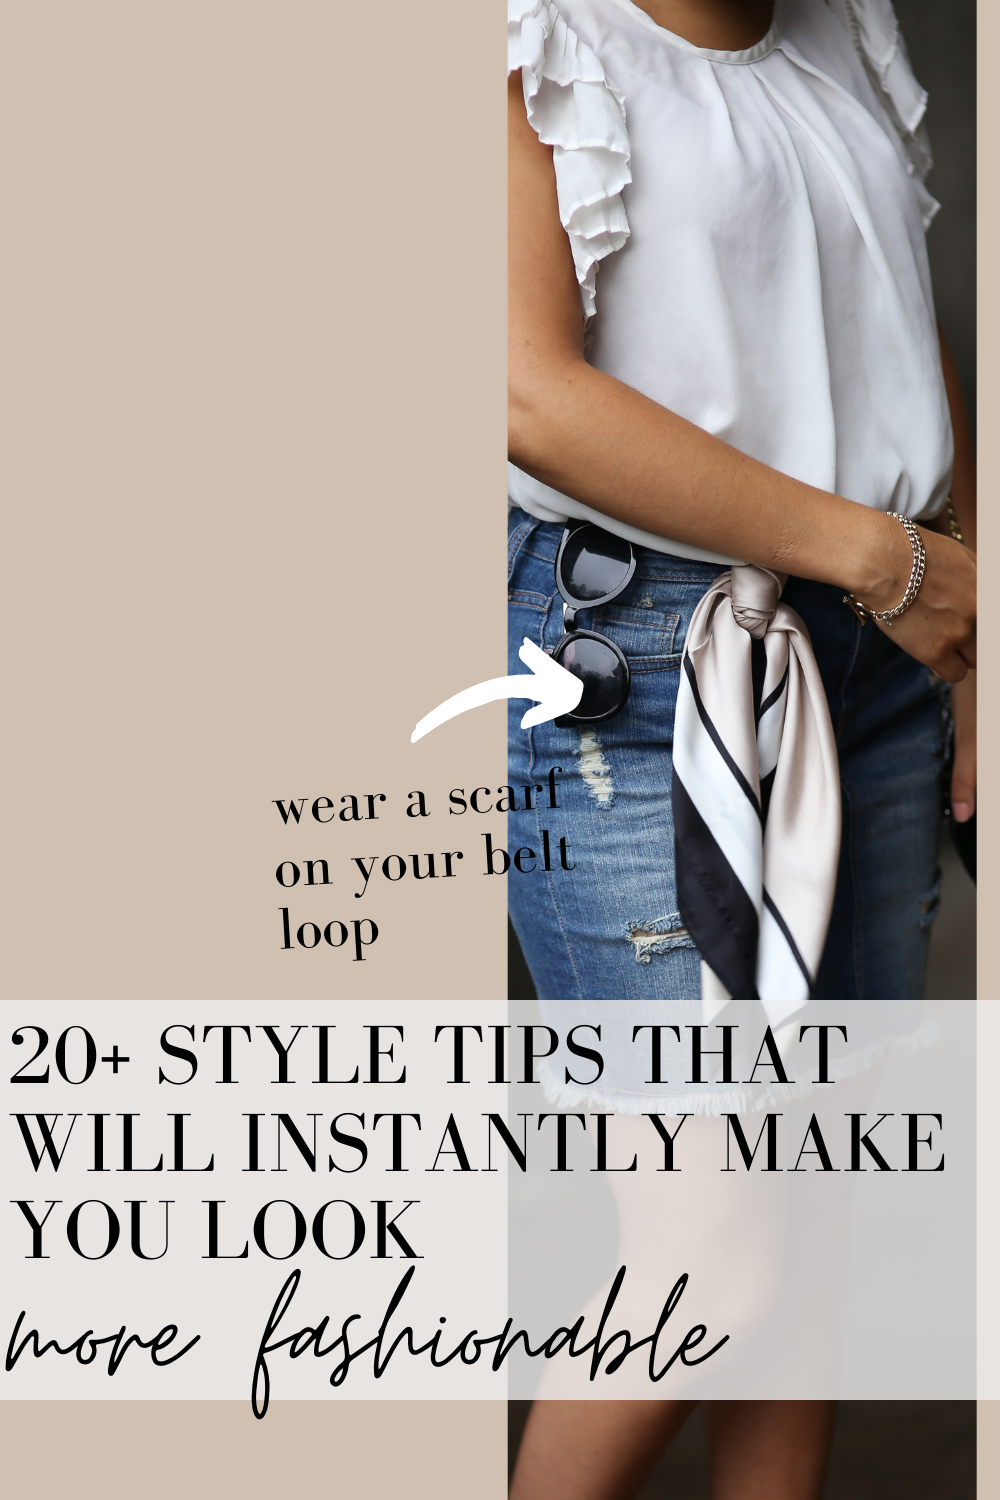 20+ style tips